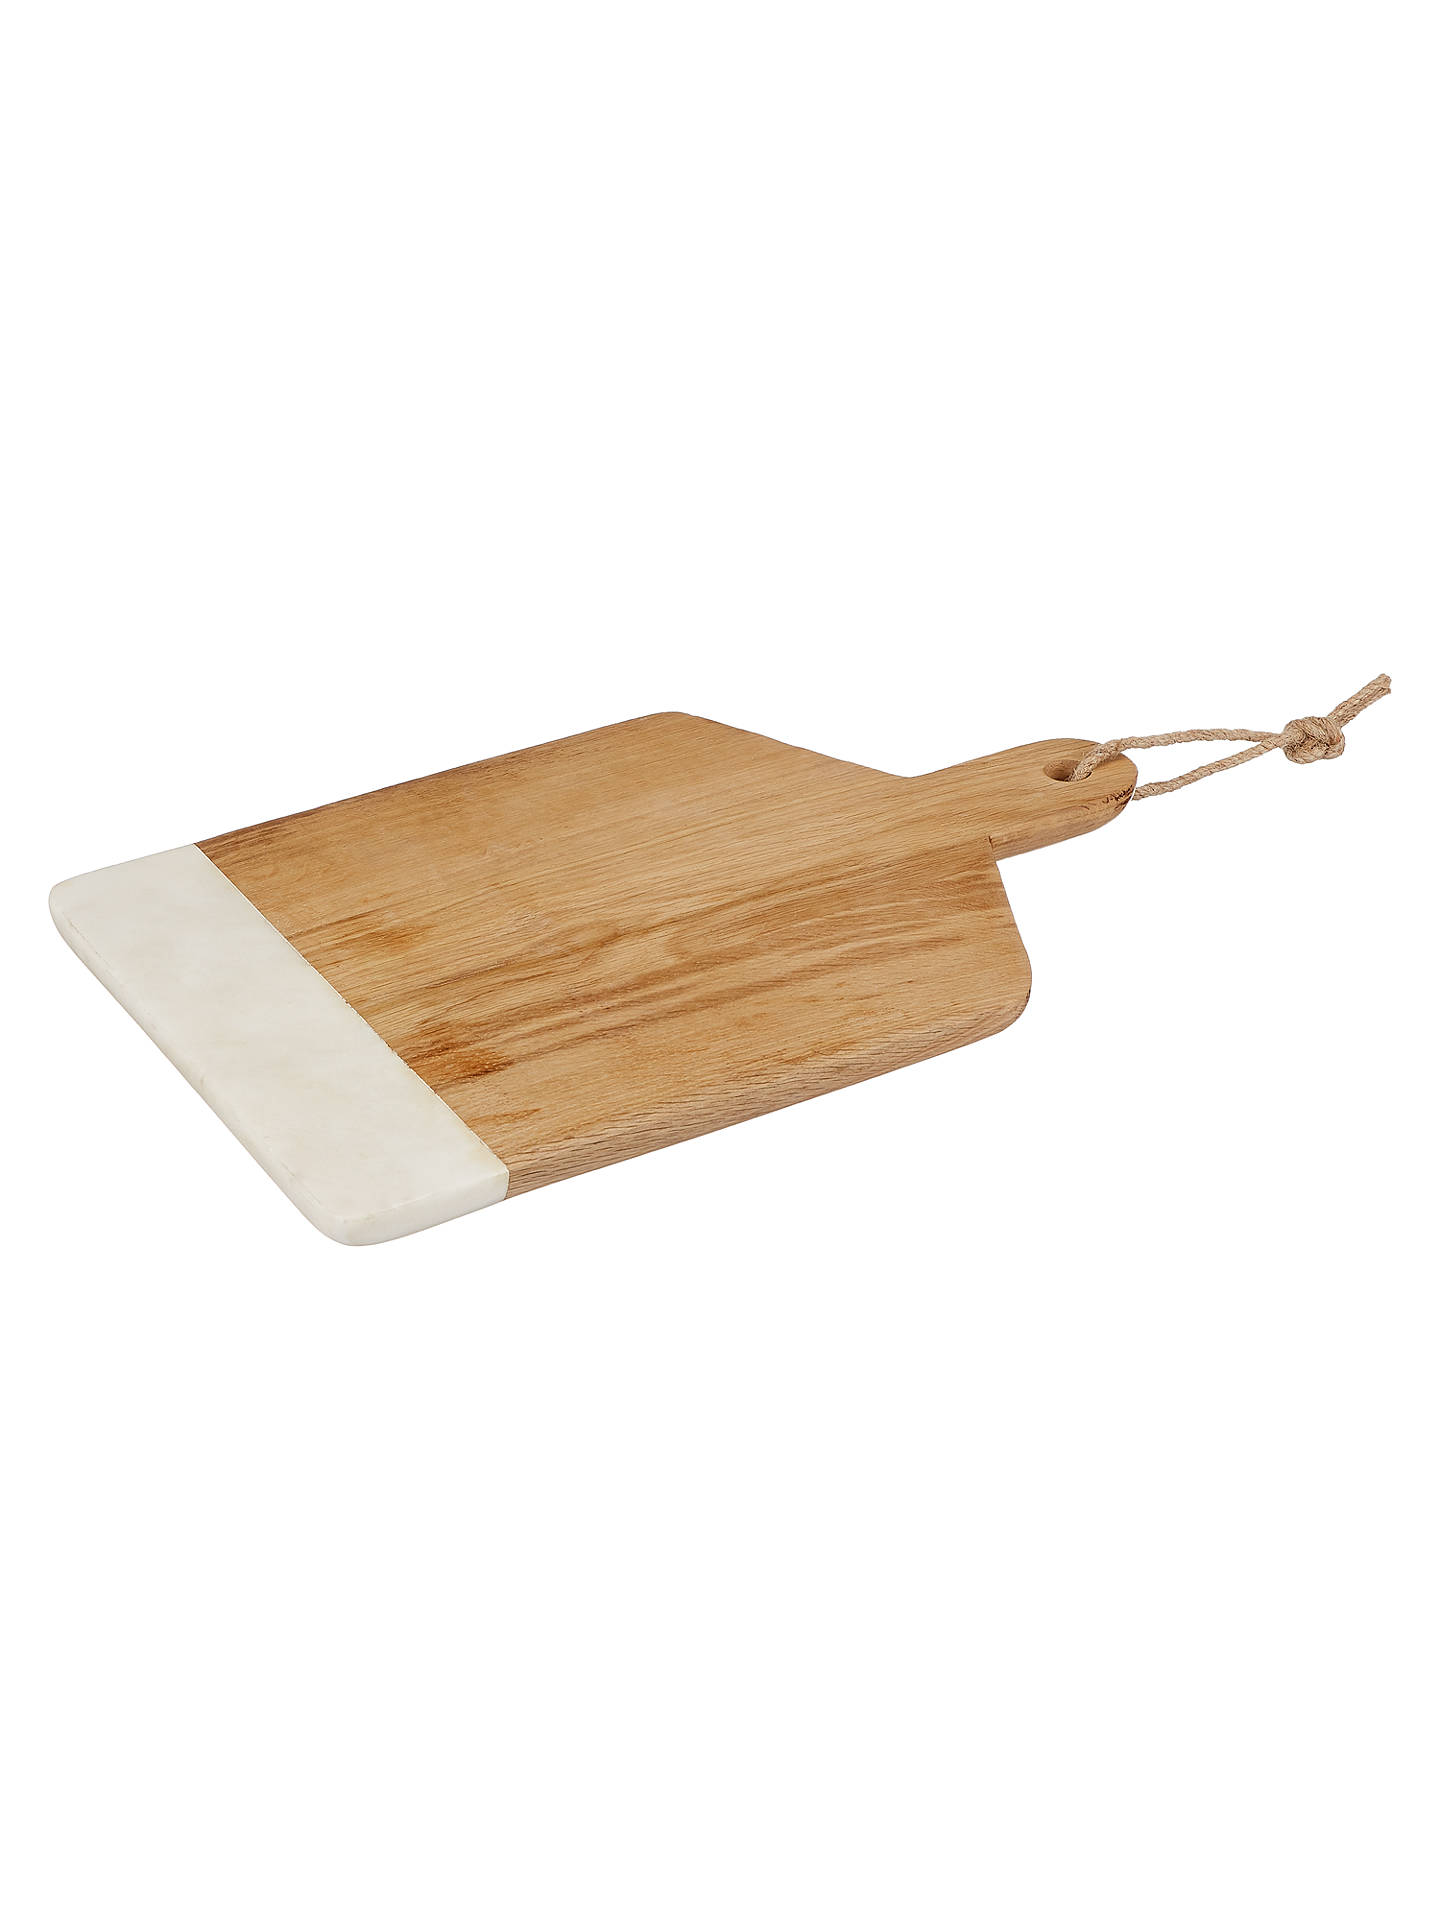 Buy Croft Collection Oak And Marble Board, Natural/White Online at johnlewis.com